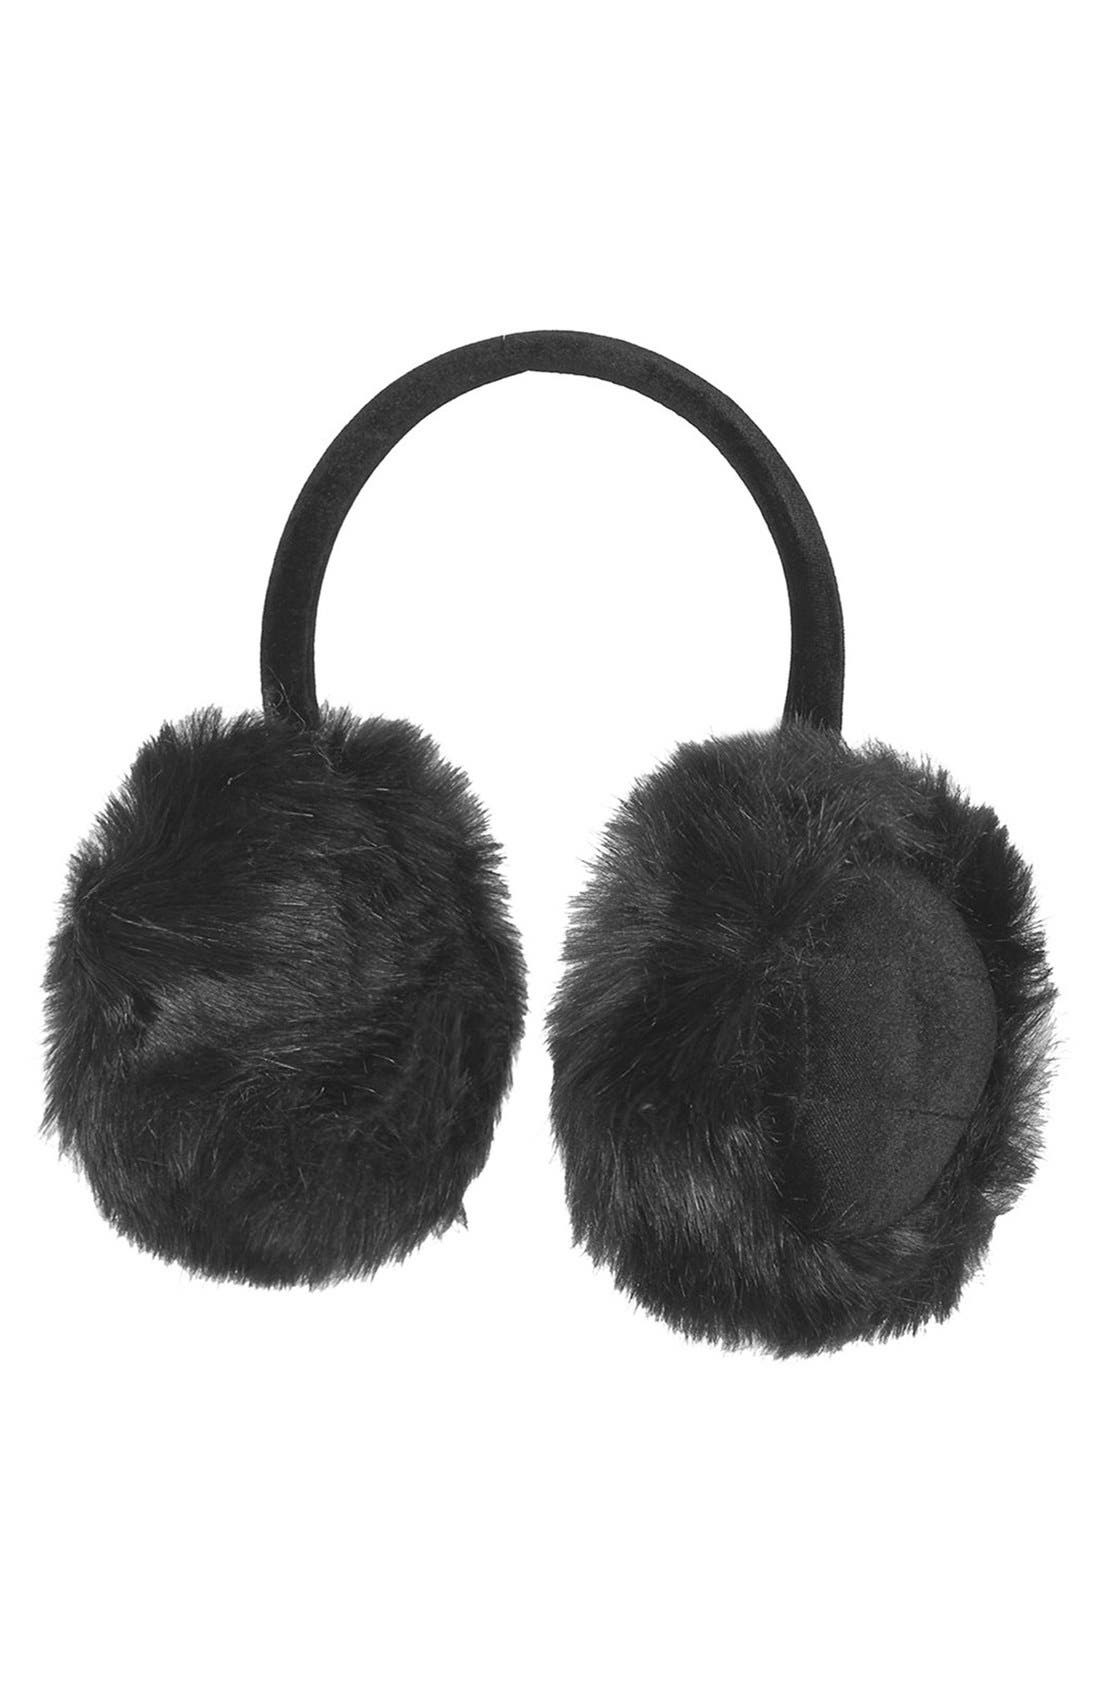 Main Image - Topshop 'Core' Faux Fur Earmuffs